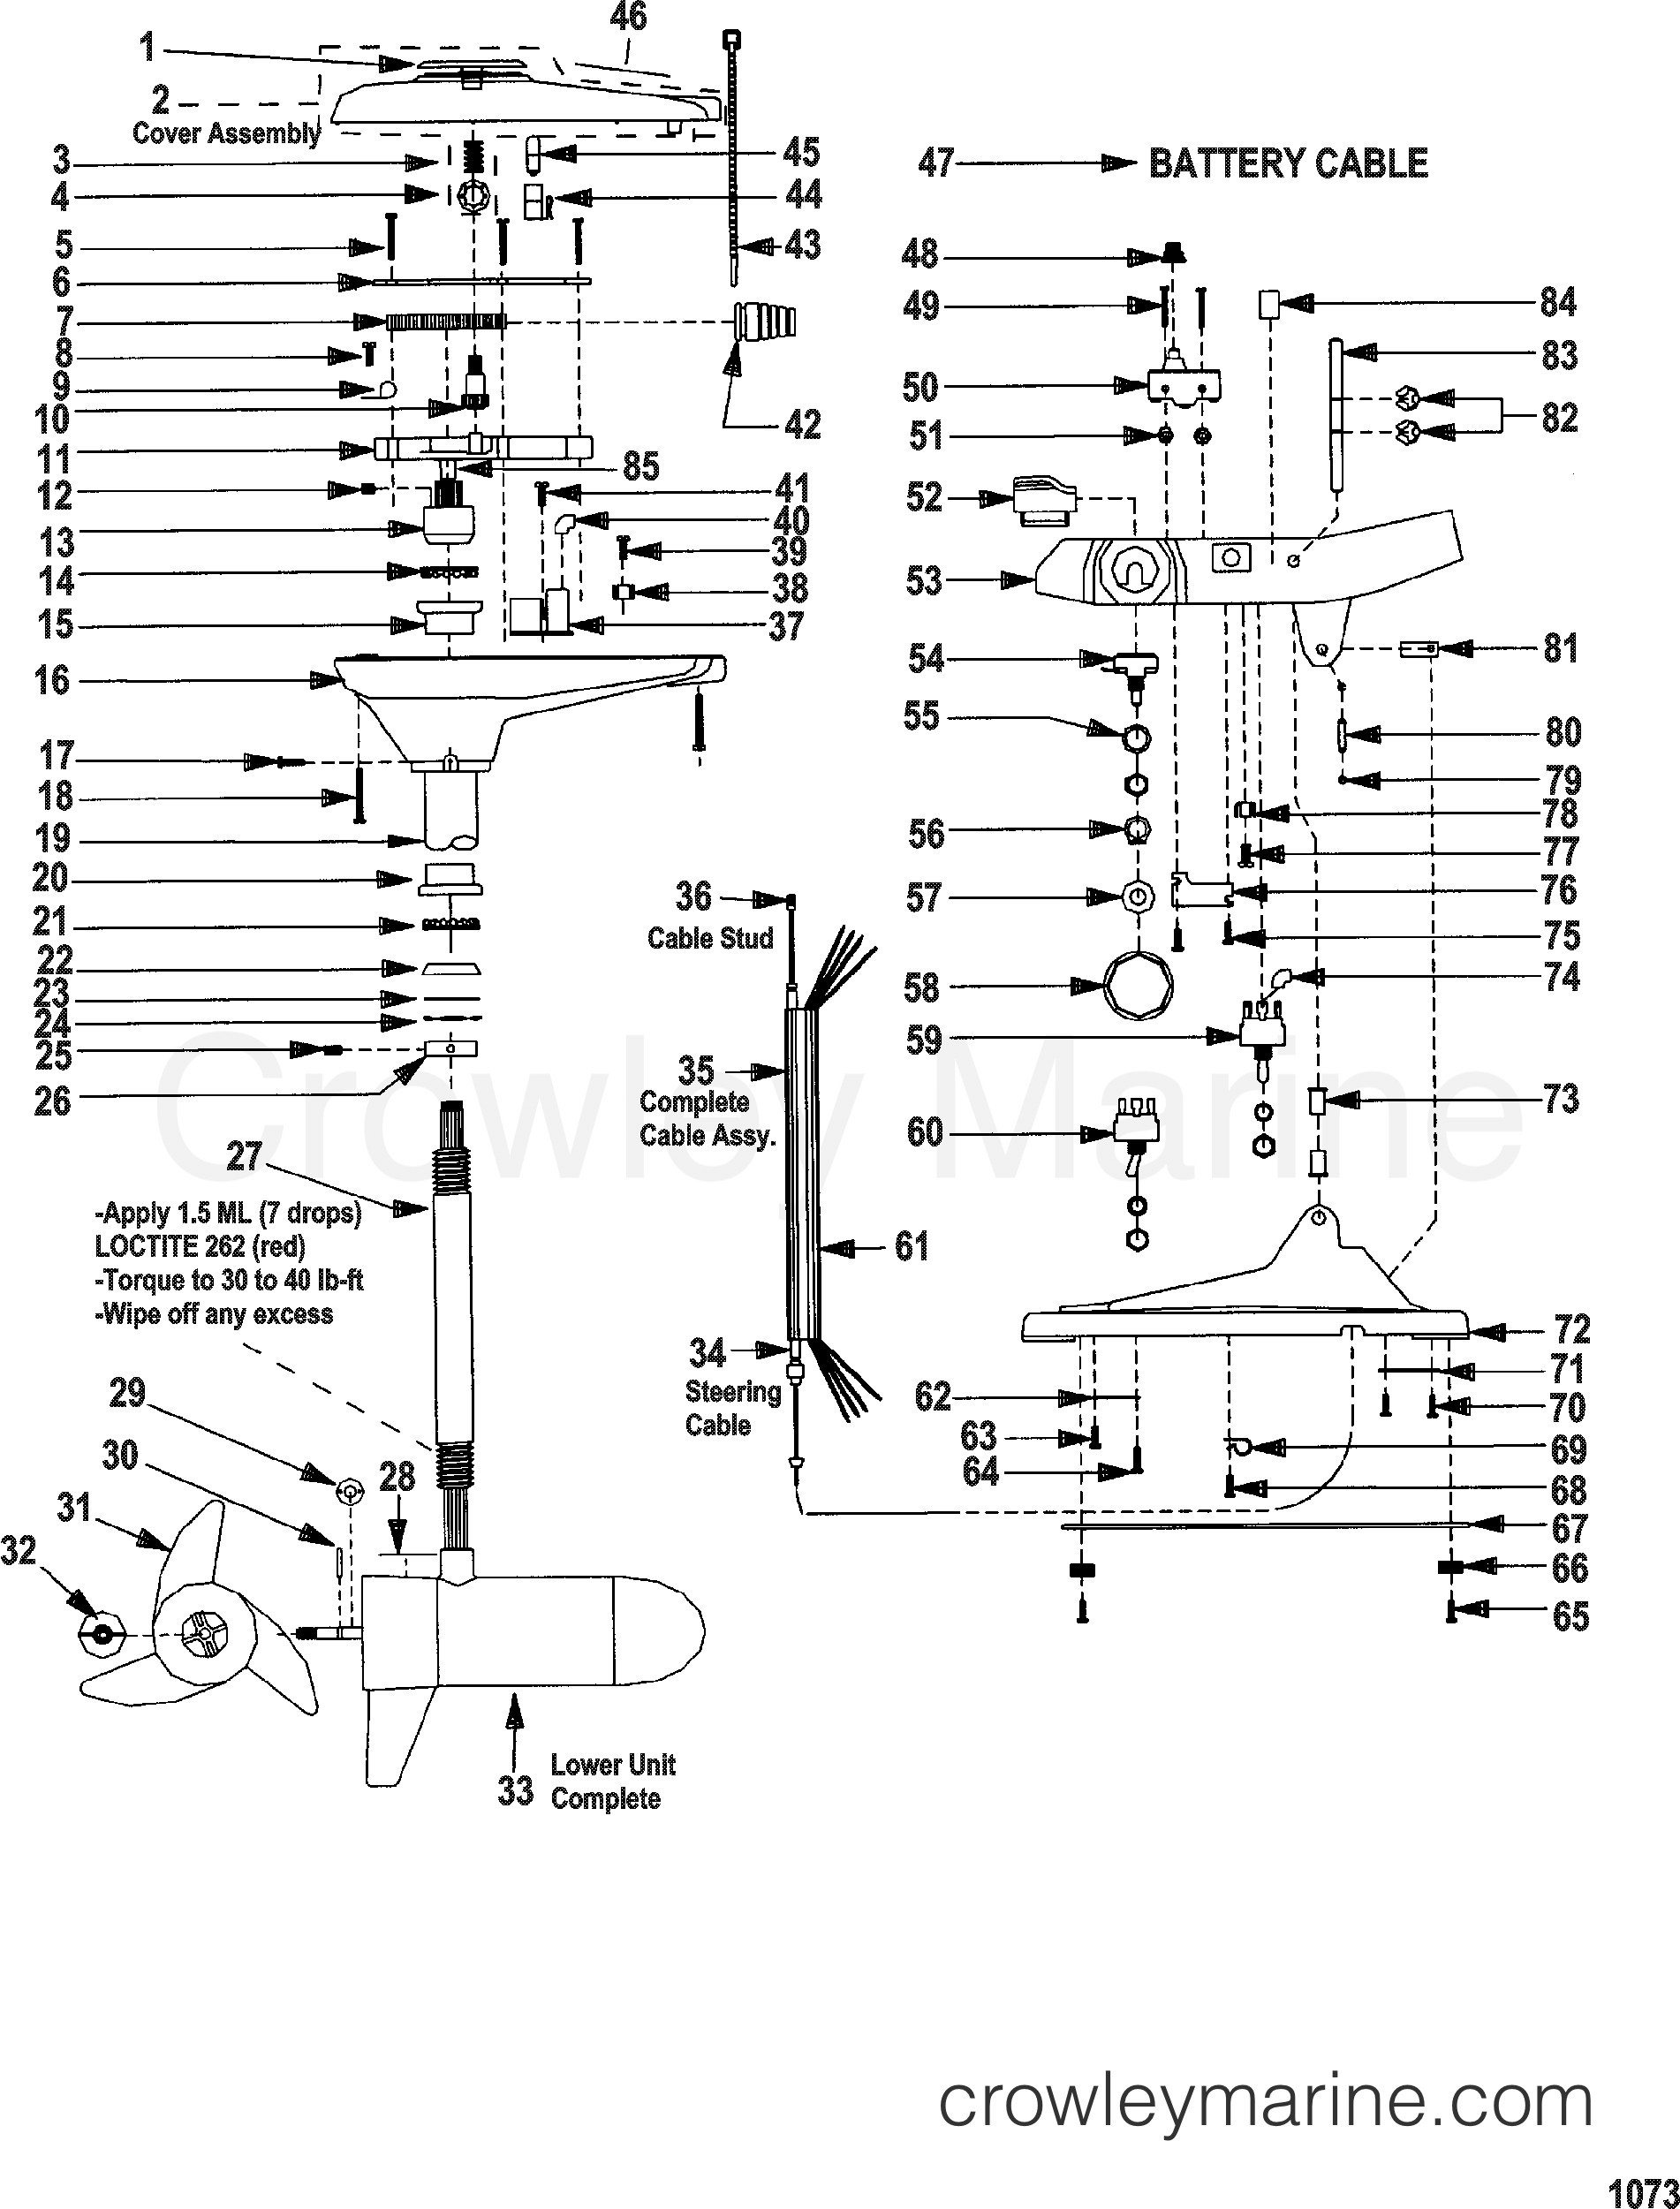 49cc X1 Wiring Diagram Free Download Oasis Dlco Library Scooter Ignition Pocket Bike Engine Fresh